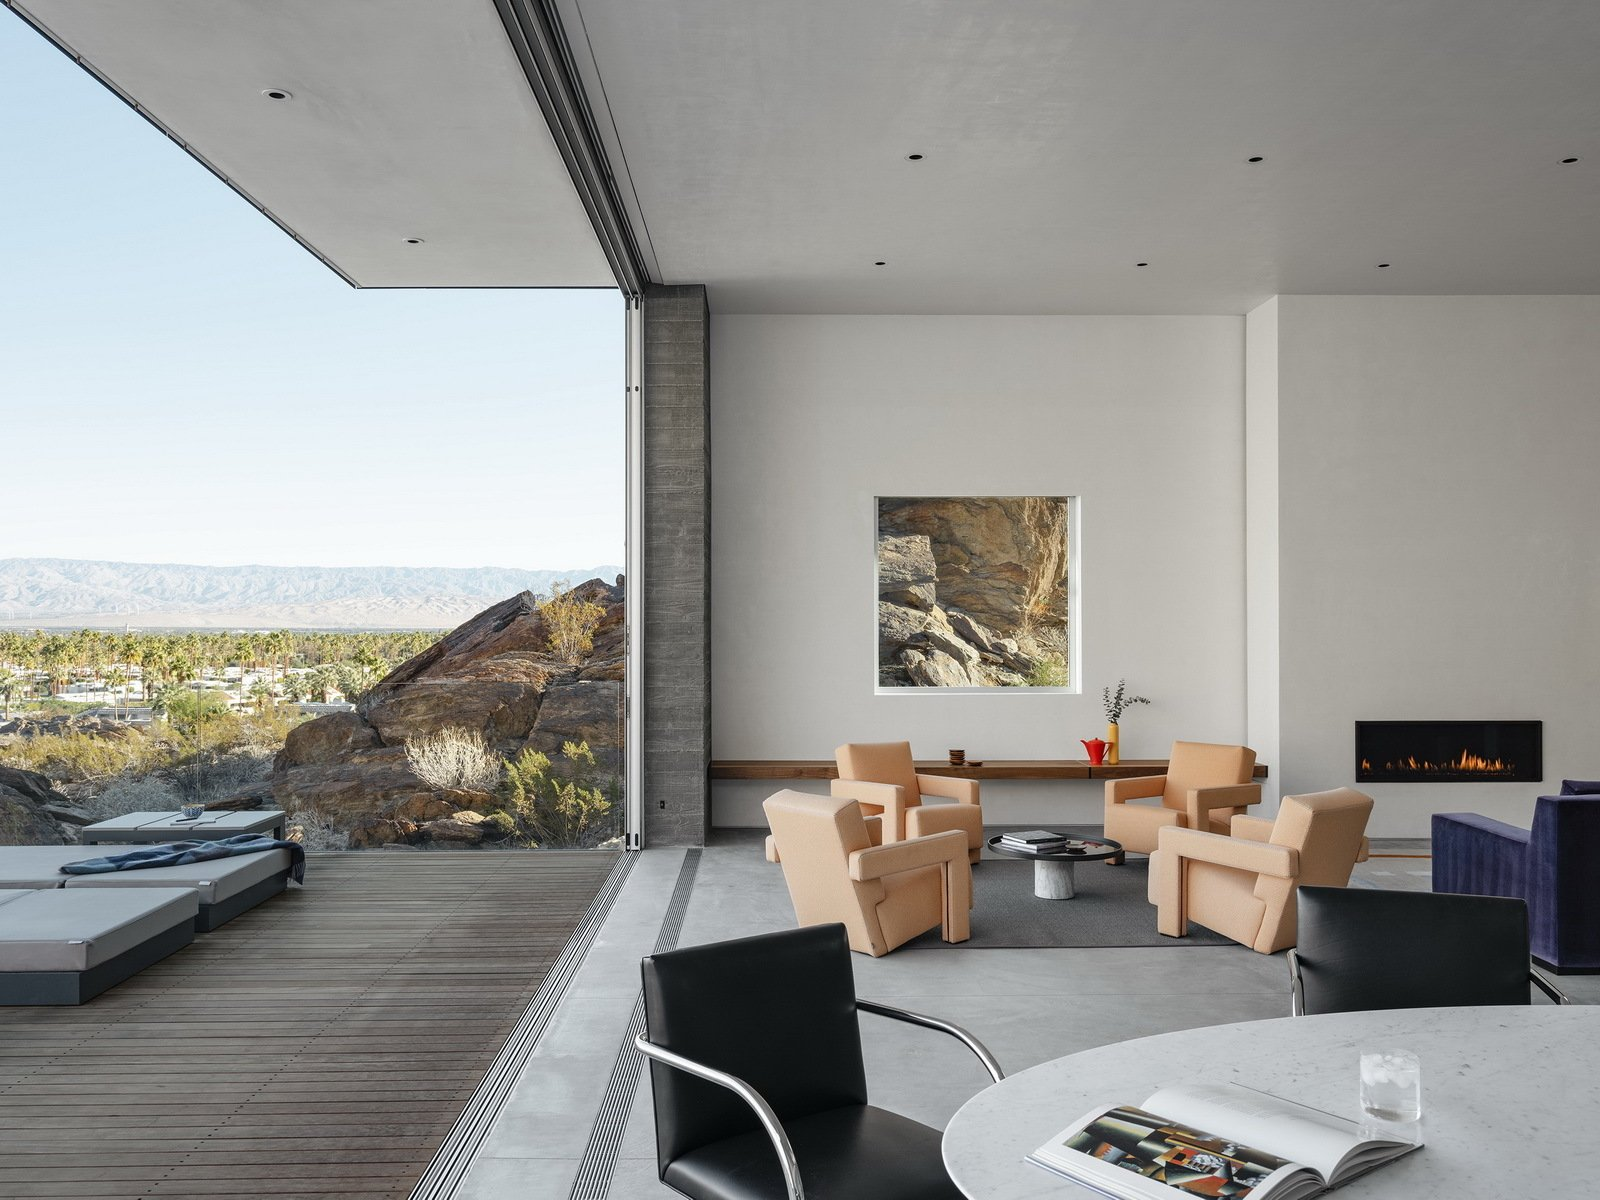 Living Room, Ribbon Fireplace, Coffee Tables, Bench, Table, Ceiling Lighting, and Chair  Ridge Mountain Residence by Ehrlich Yanai Rhee Chaney Architects